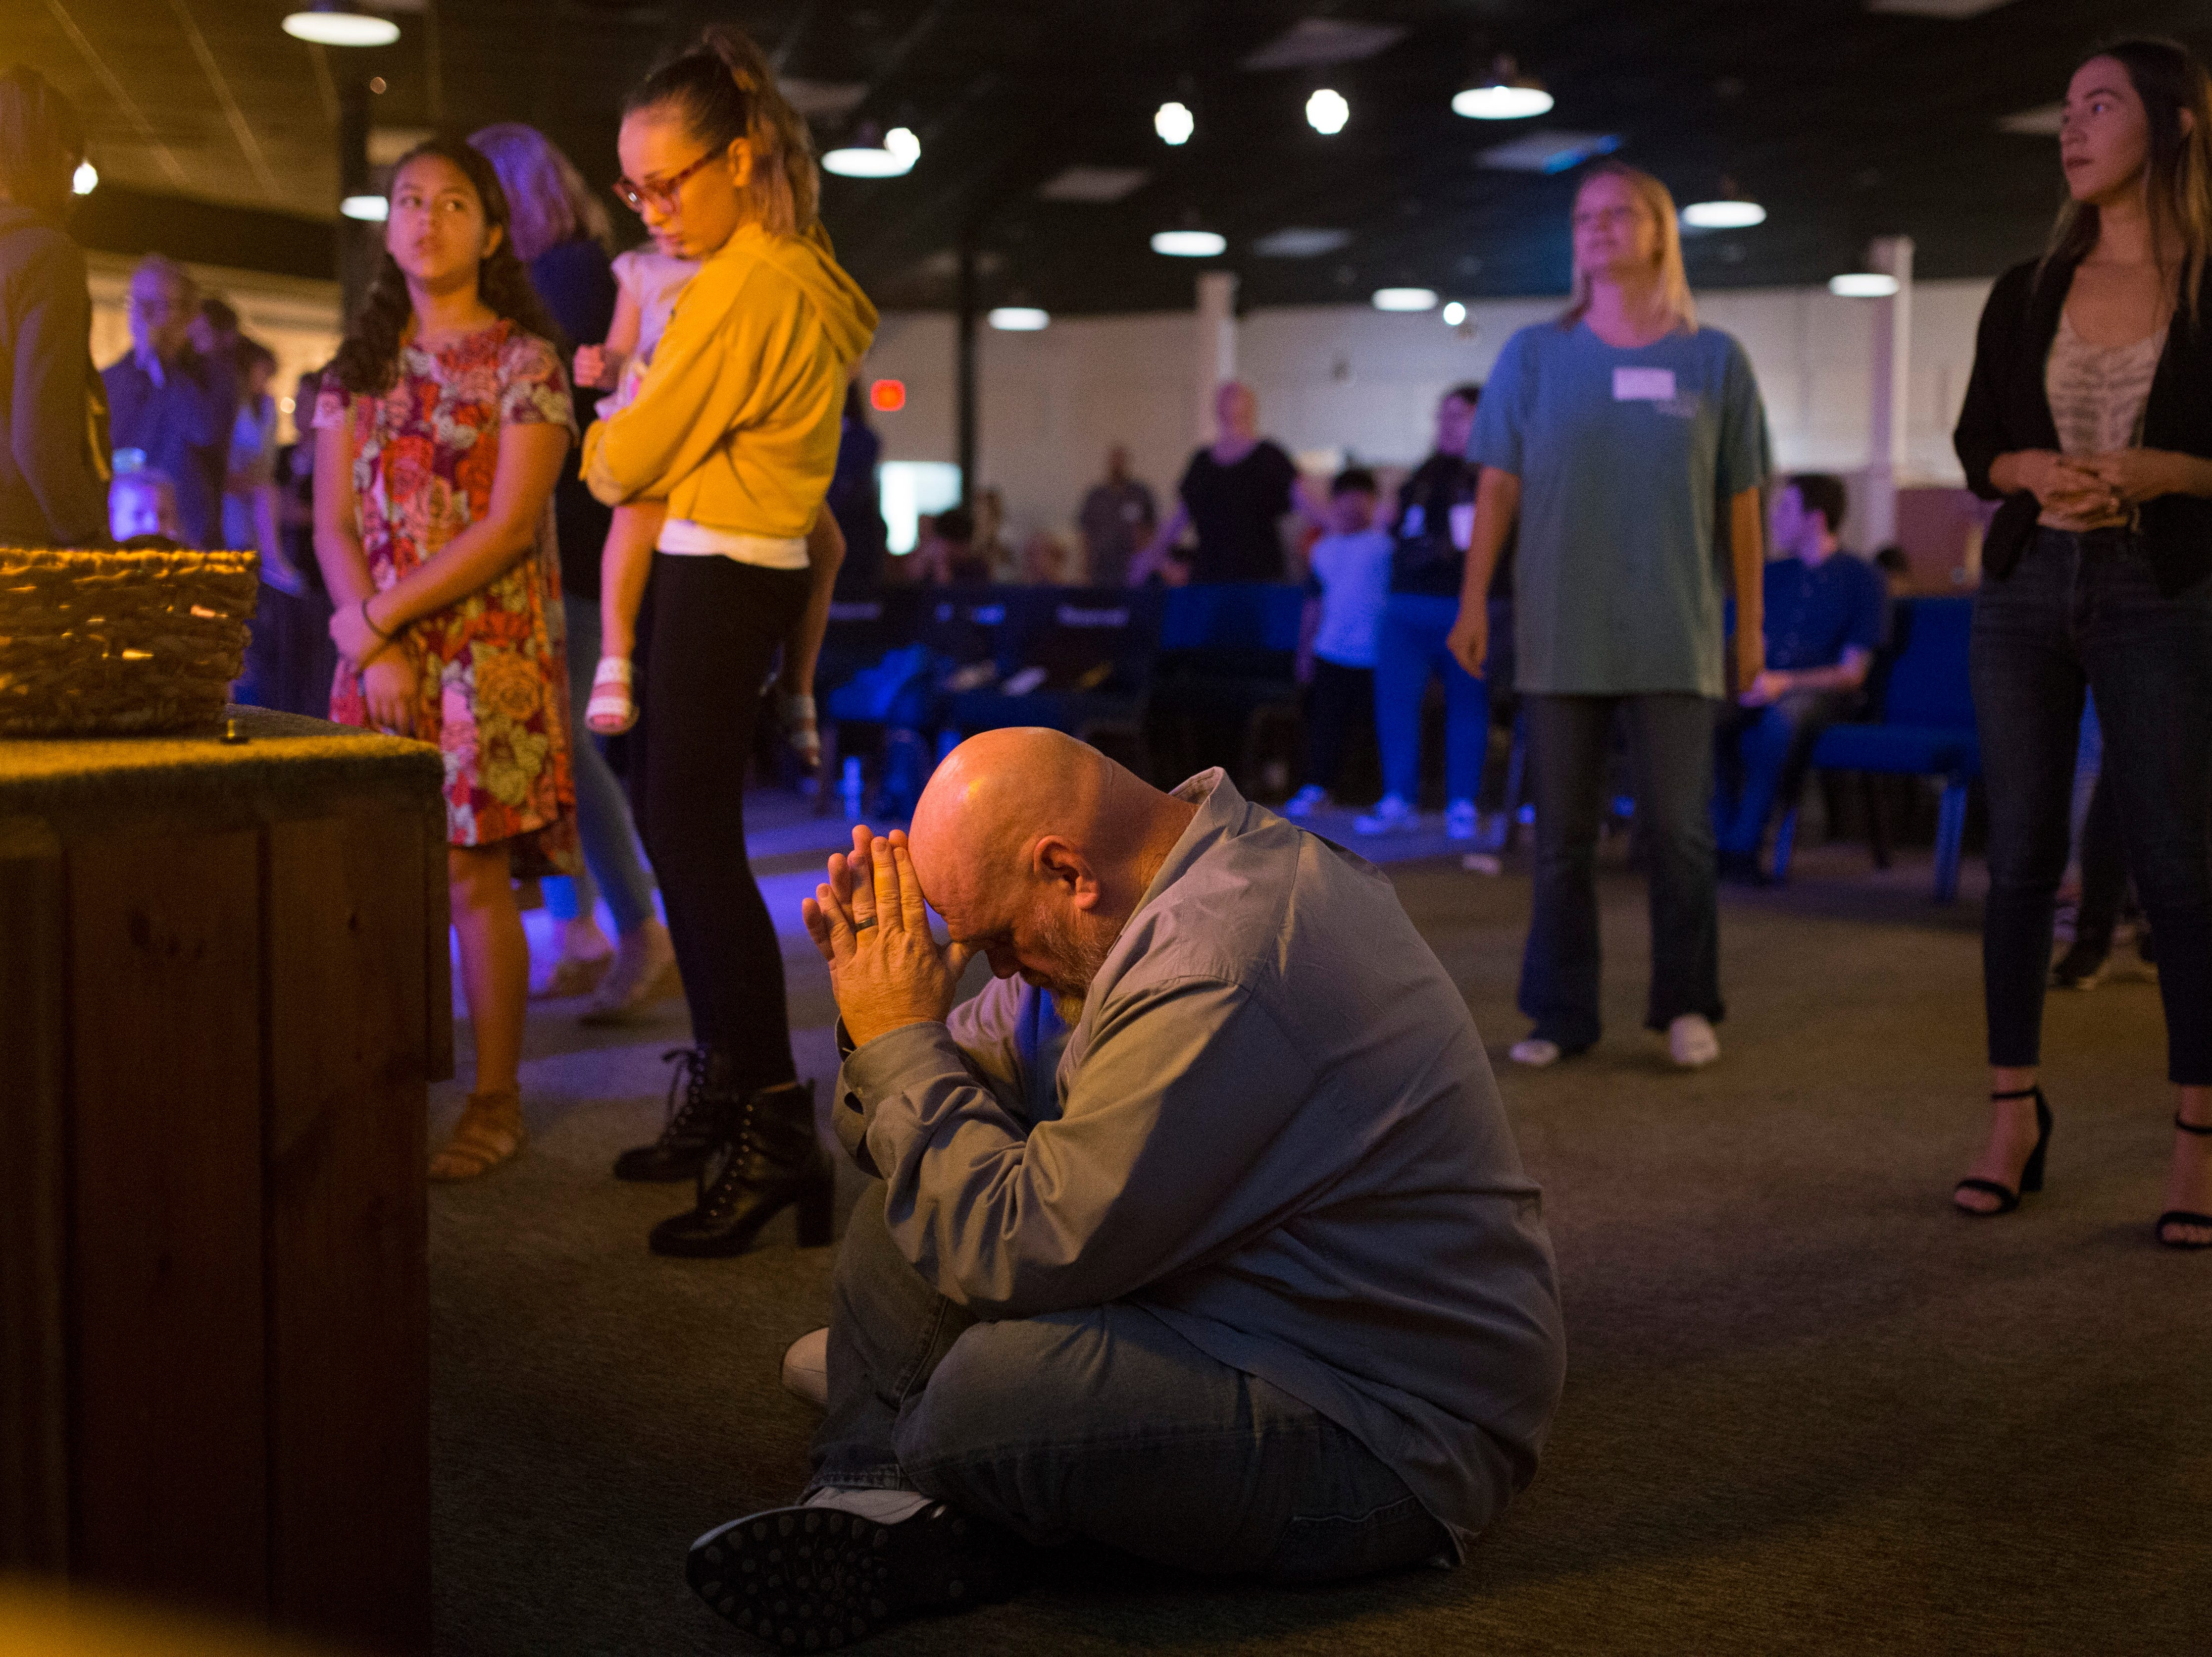 Troy Walters prays at church on Wednesday, Oct. 24, 2018 in Corpus Christi. Walters has seen firsthand the toll drug addiction can take on a family. He's also a drug counselor for South Texas Substance Abuse Recovery Services.